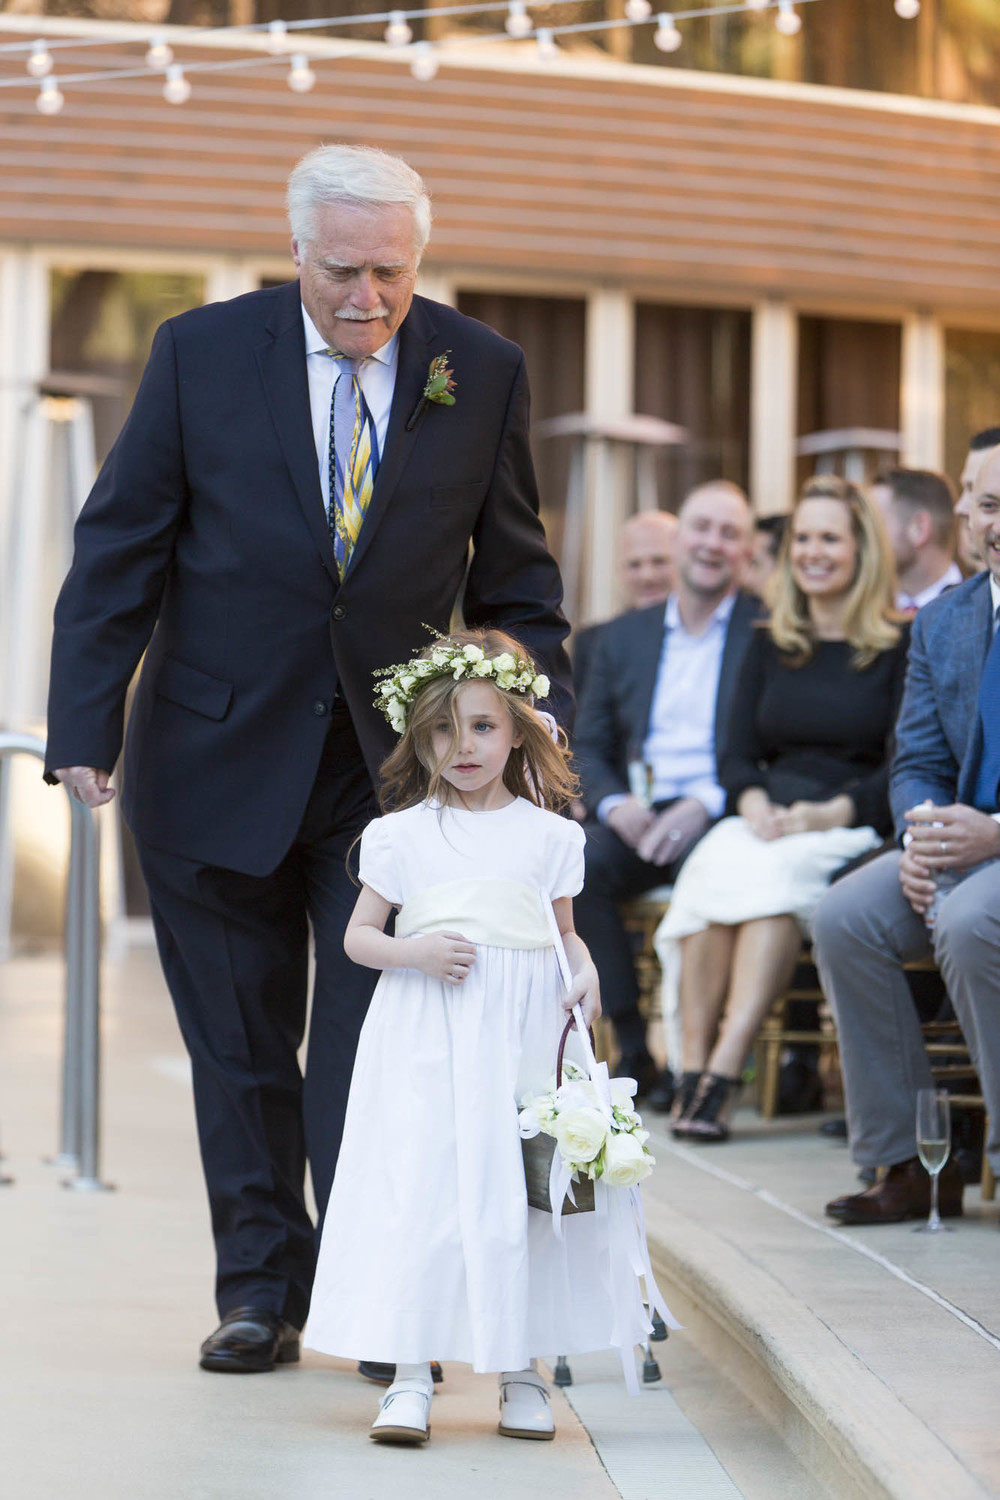 Daughter of the grooms being walked down the aisle by her Grandpa. Gay Wedding at Red Rock Resort by Las Vegas Wedding Planner Andrea Eppolito.  Images by Altf Photography.  Florals and decor by Destinations by Design.  Two grooms at a gay wedding in Las Vegas.